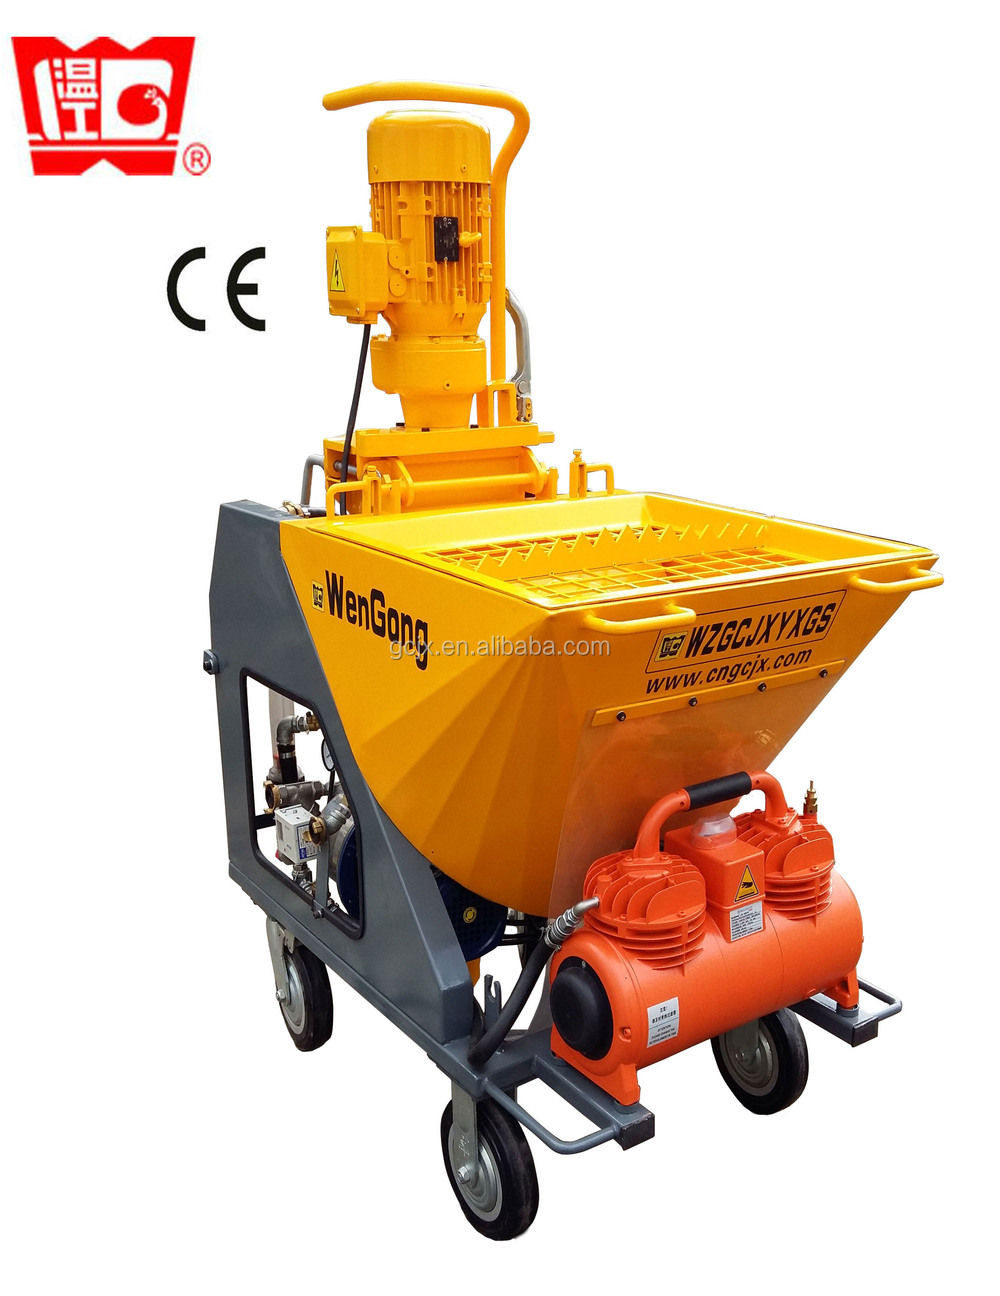 Energy Saving PFT G4 Plastering Machines in wenzhou